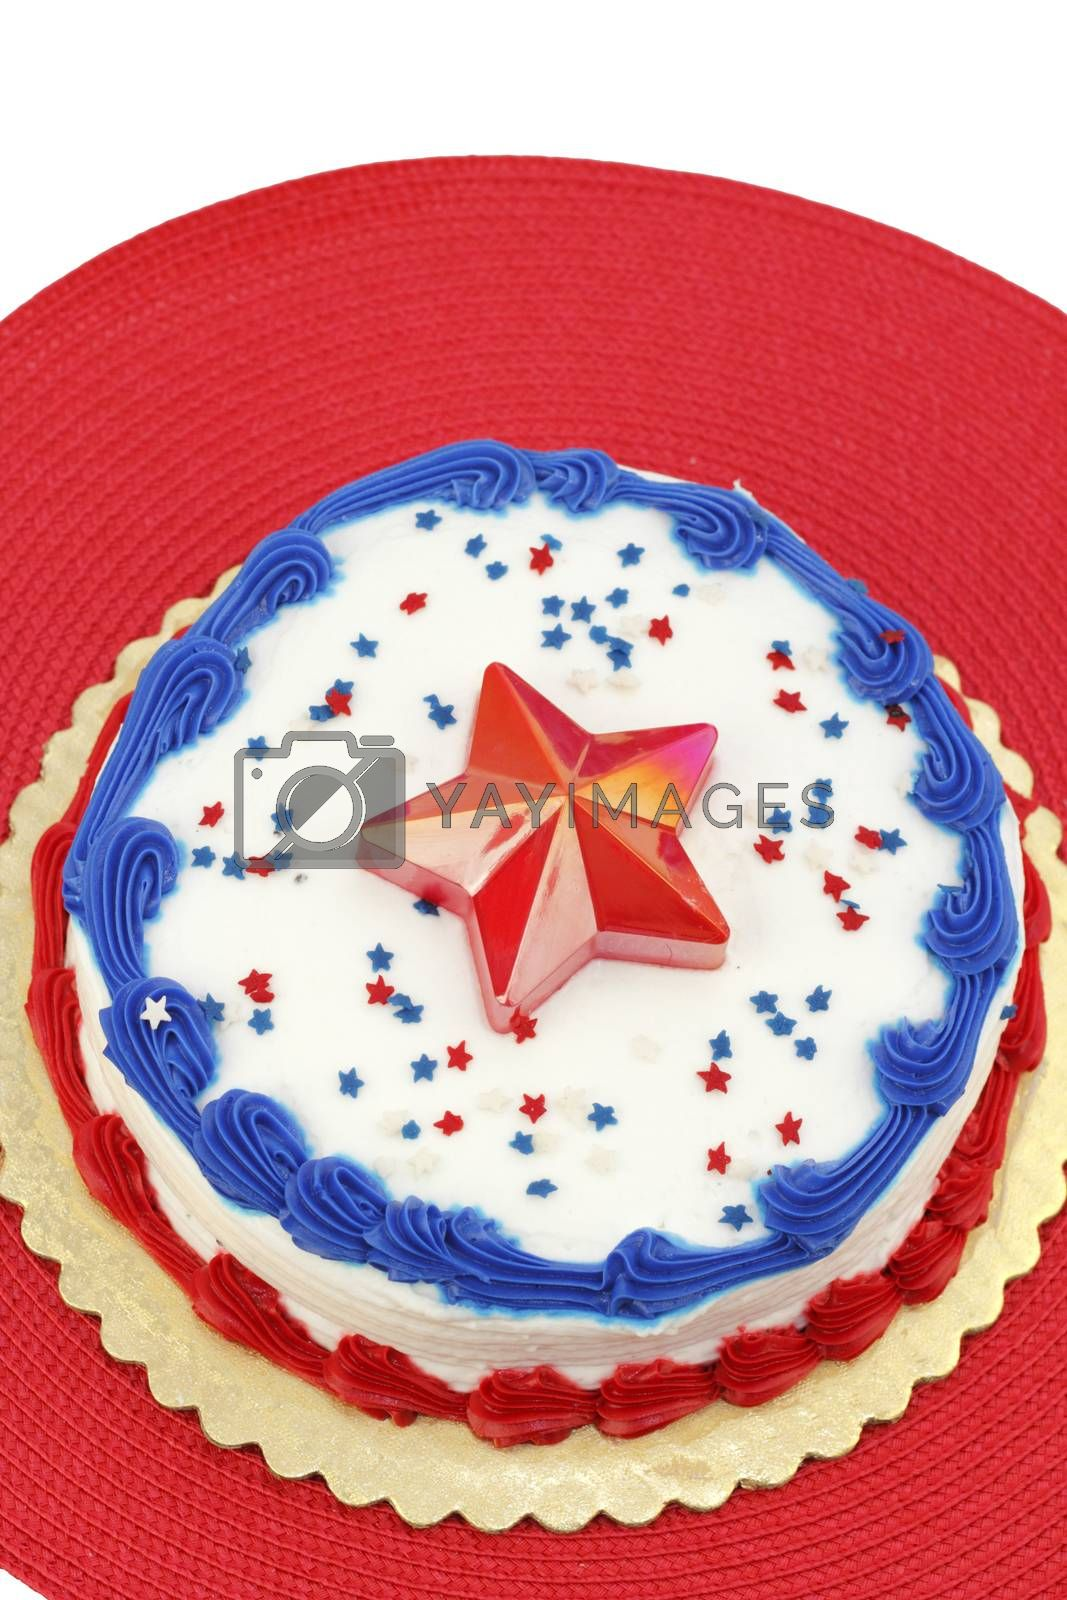 Festive red, white and blue July 4th cake, decorated with edible star sprinkles, one large plastic star, and frosting. The dessert is placed on a gold foundation over a round red place mat.